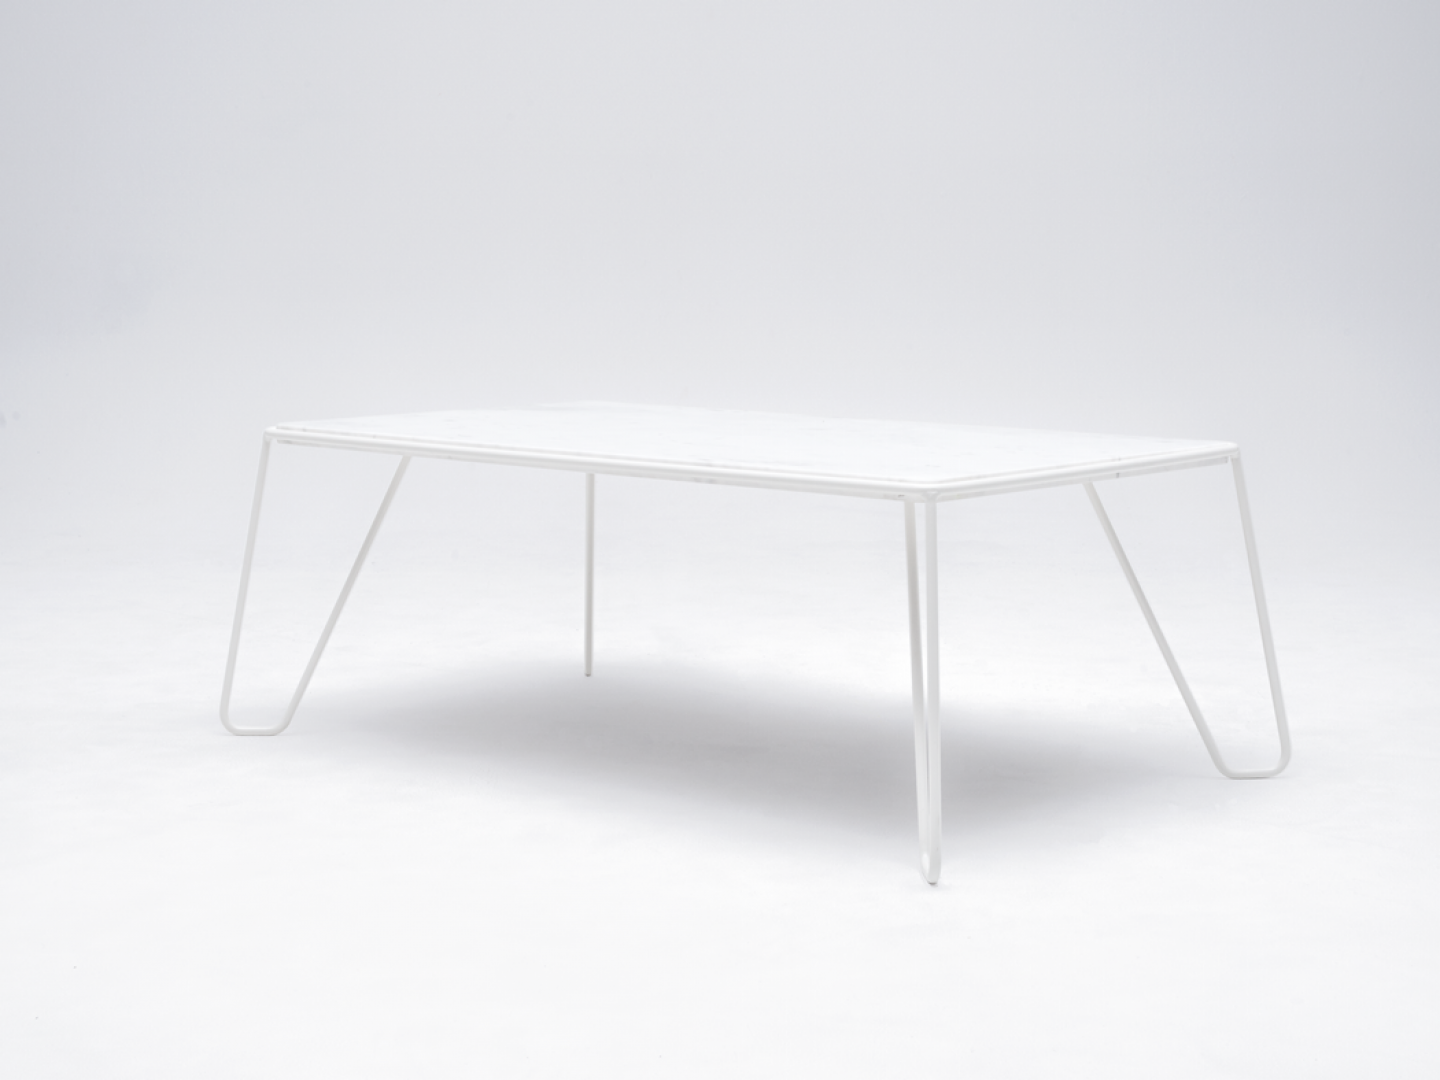 objekte-unserer-tage-08-studio-19-yilmaz-Coffee-table-(high-res)